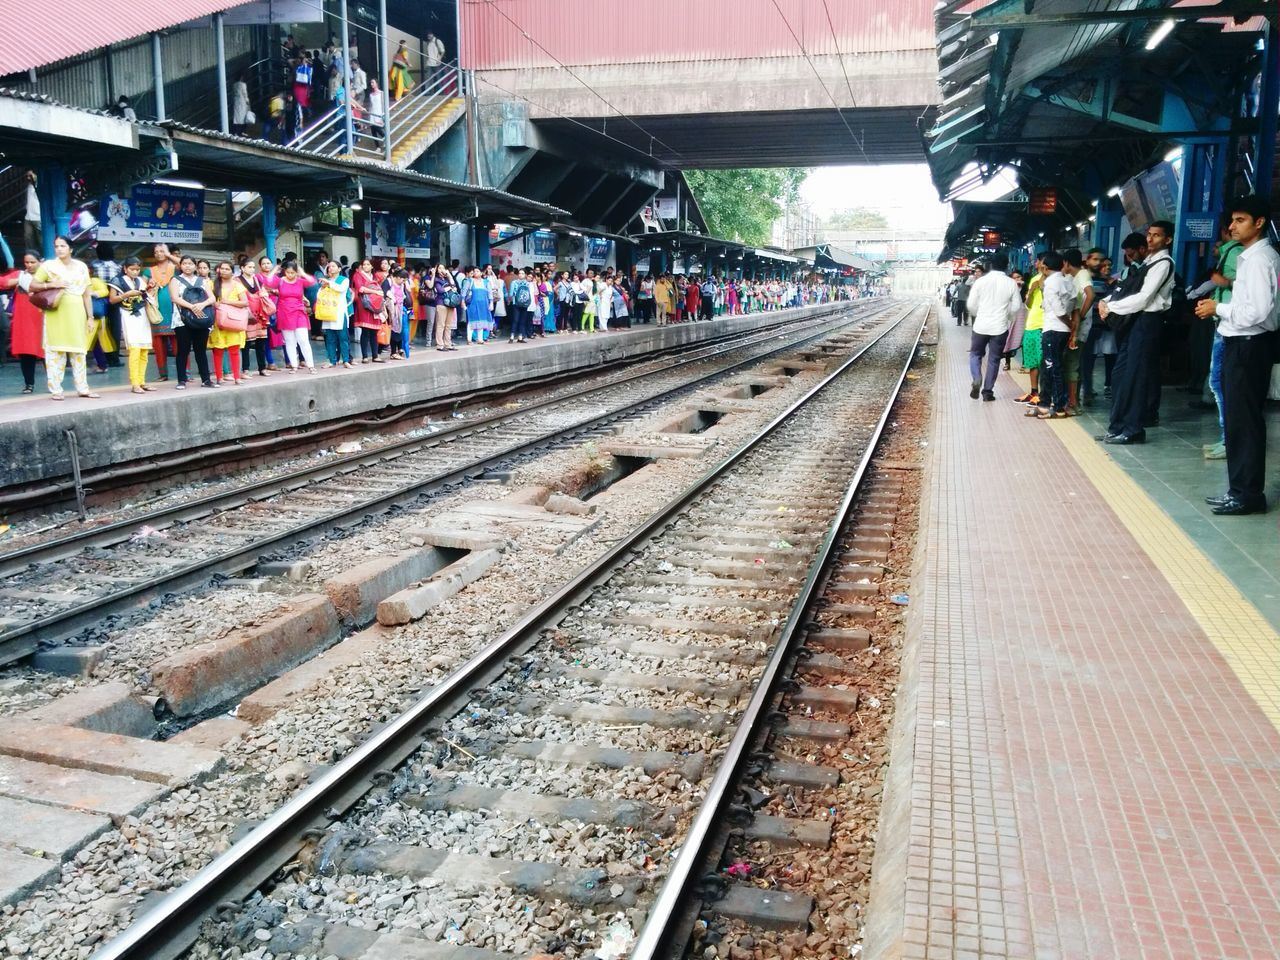 Women waiting for ladies only train Traveling Local Train Mumbaikar City Life India Mumbai Working Women Train Station Railway Track Nexus5photography